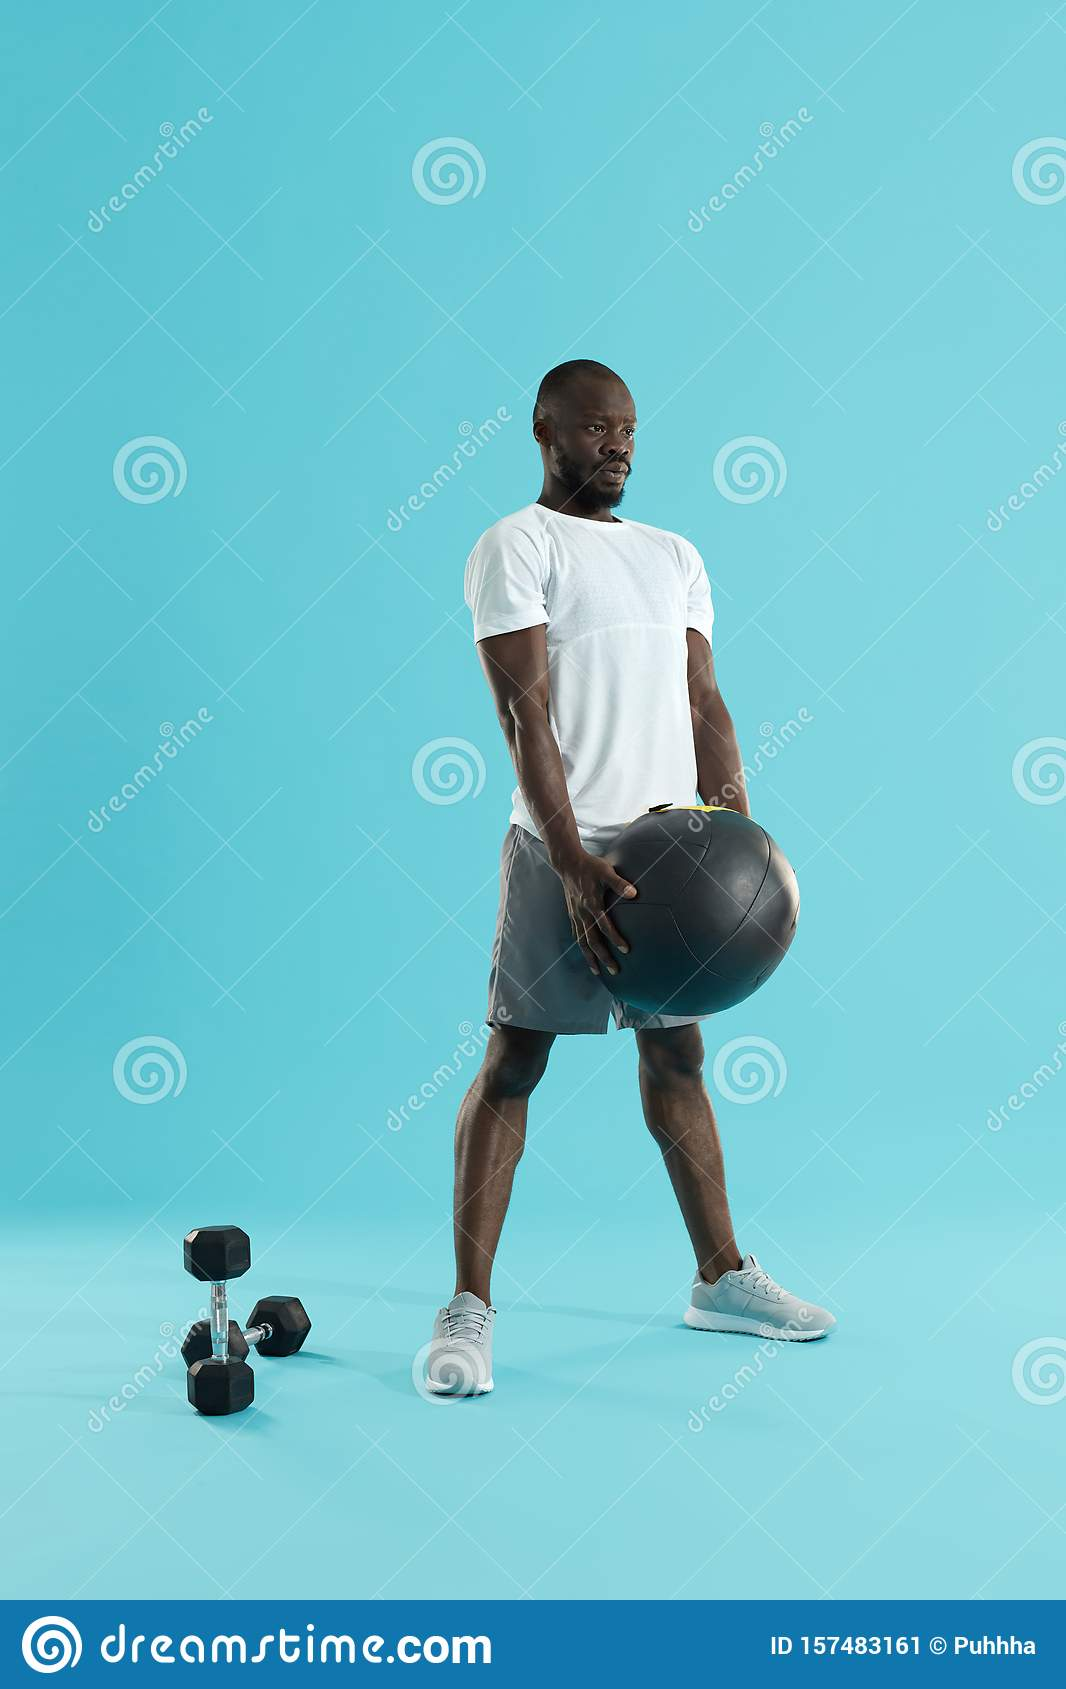 Workout. Sports man exercising with med ball, training